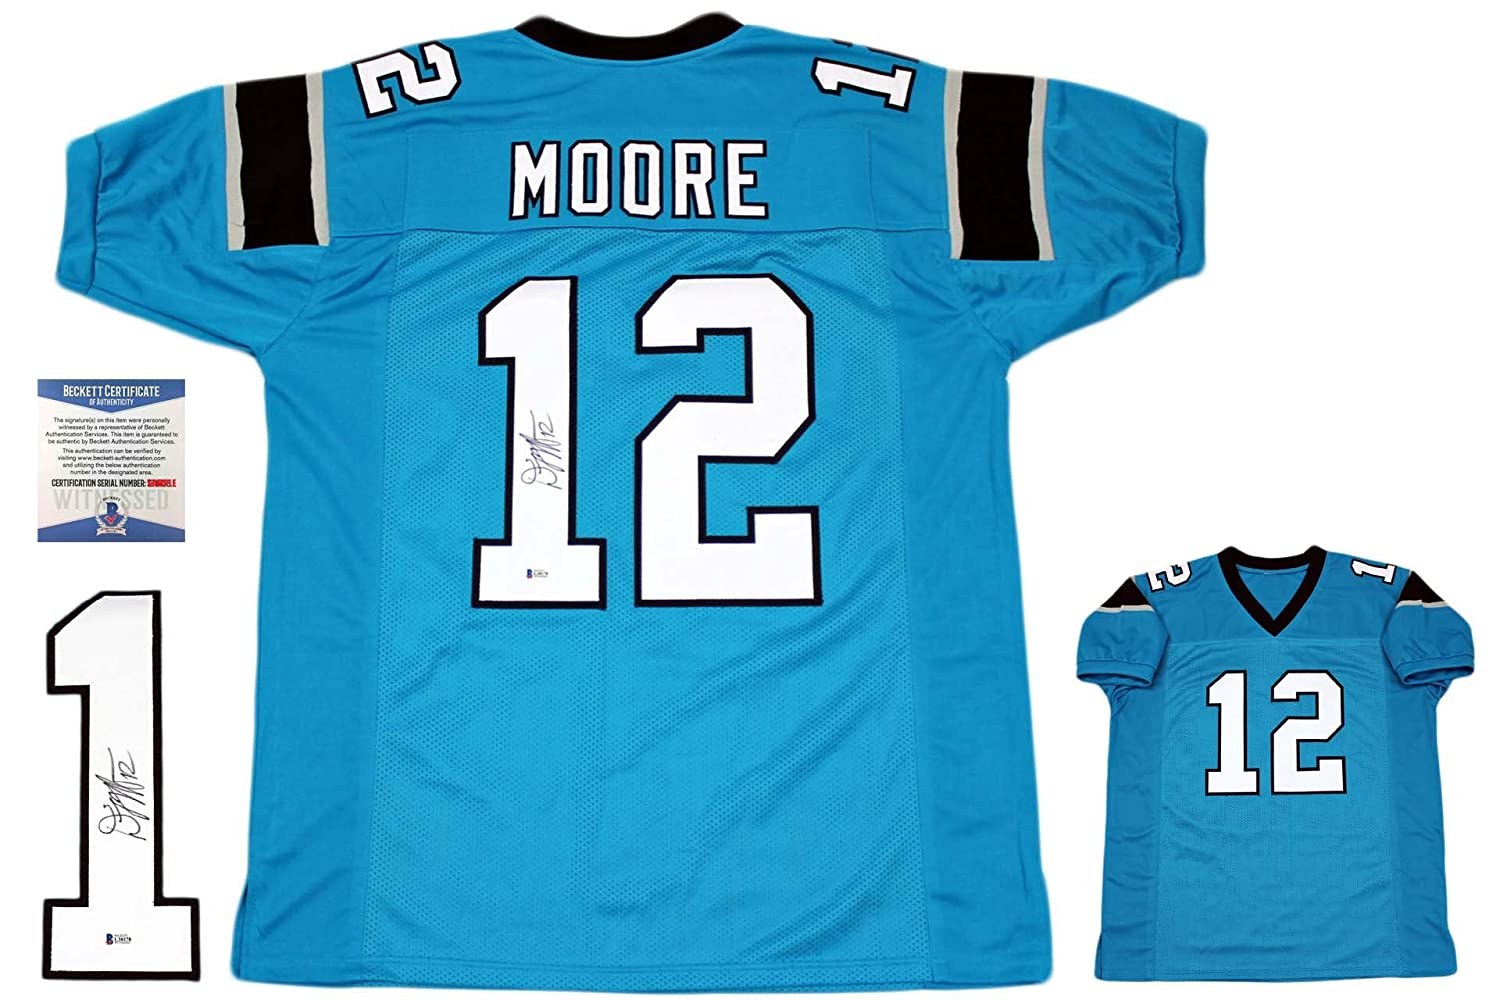 Dj Moore Autographed Signed Jersey - Beckett Authentic - Blue